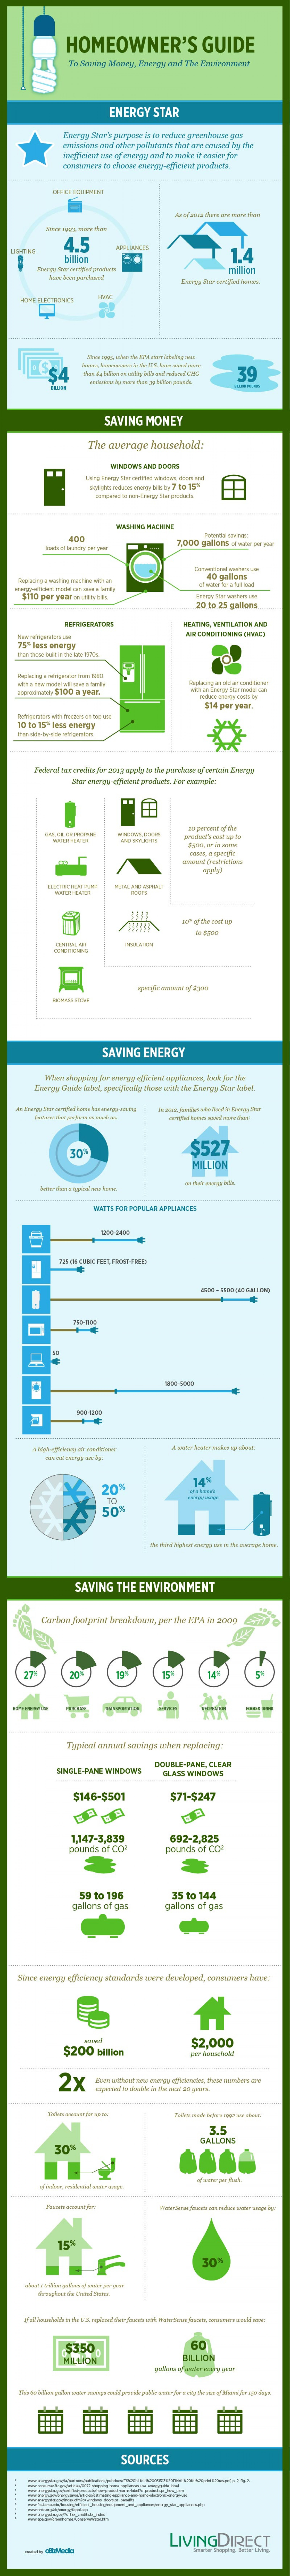 Homeowner's Guide to Saving Money, Energy and the Environment Infographic